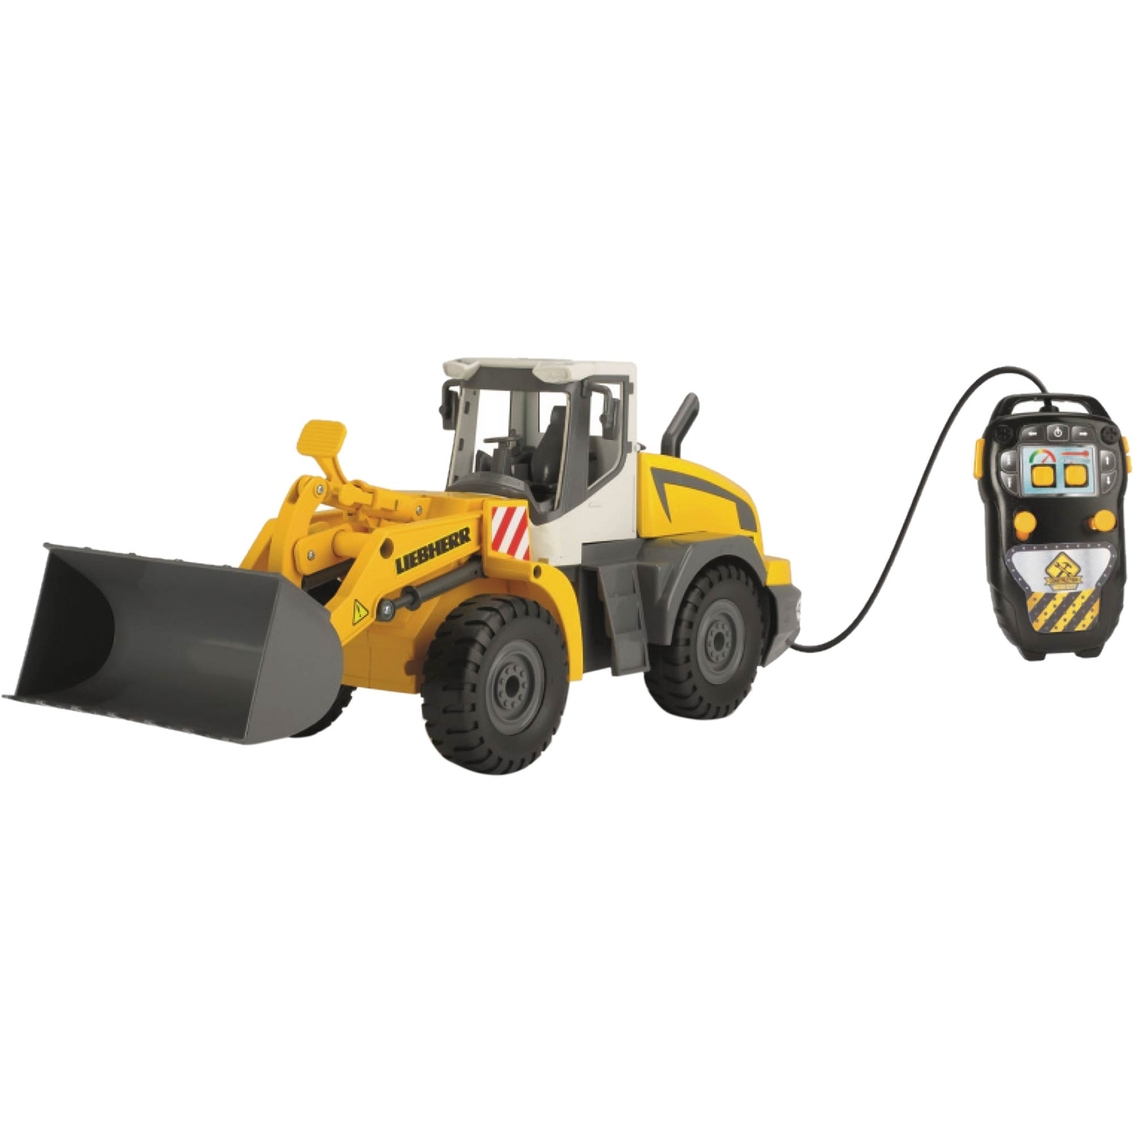 Remote Control Construction Toys : Dickie toys remote control construction front loader